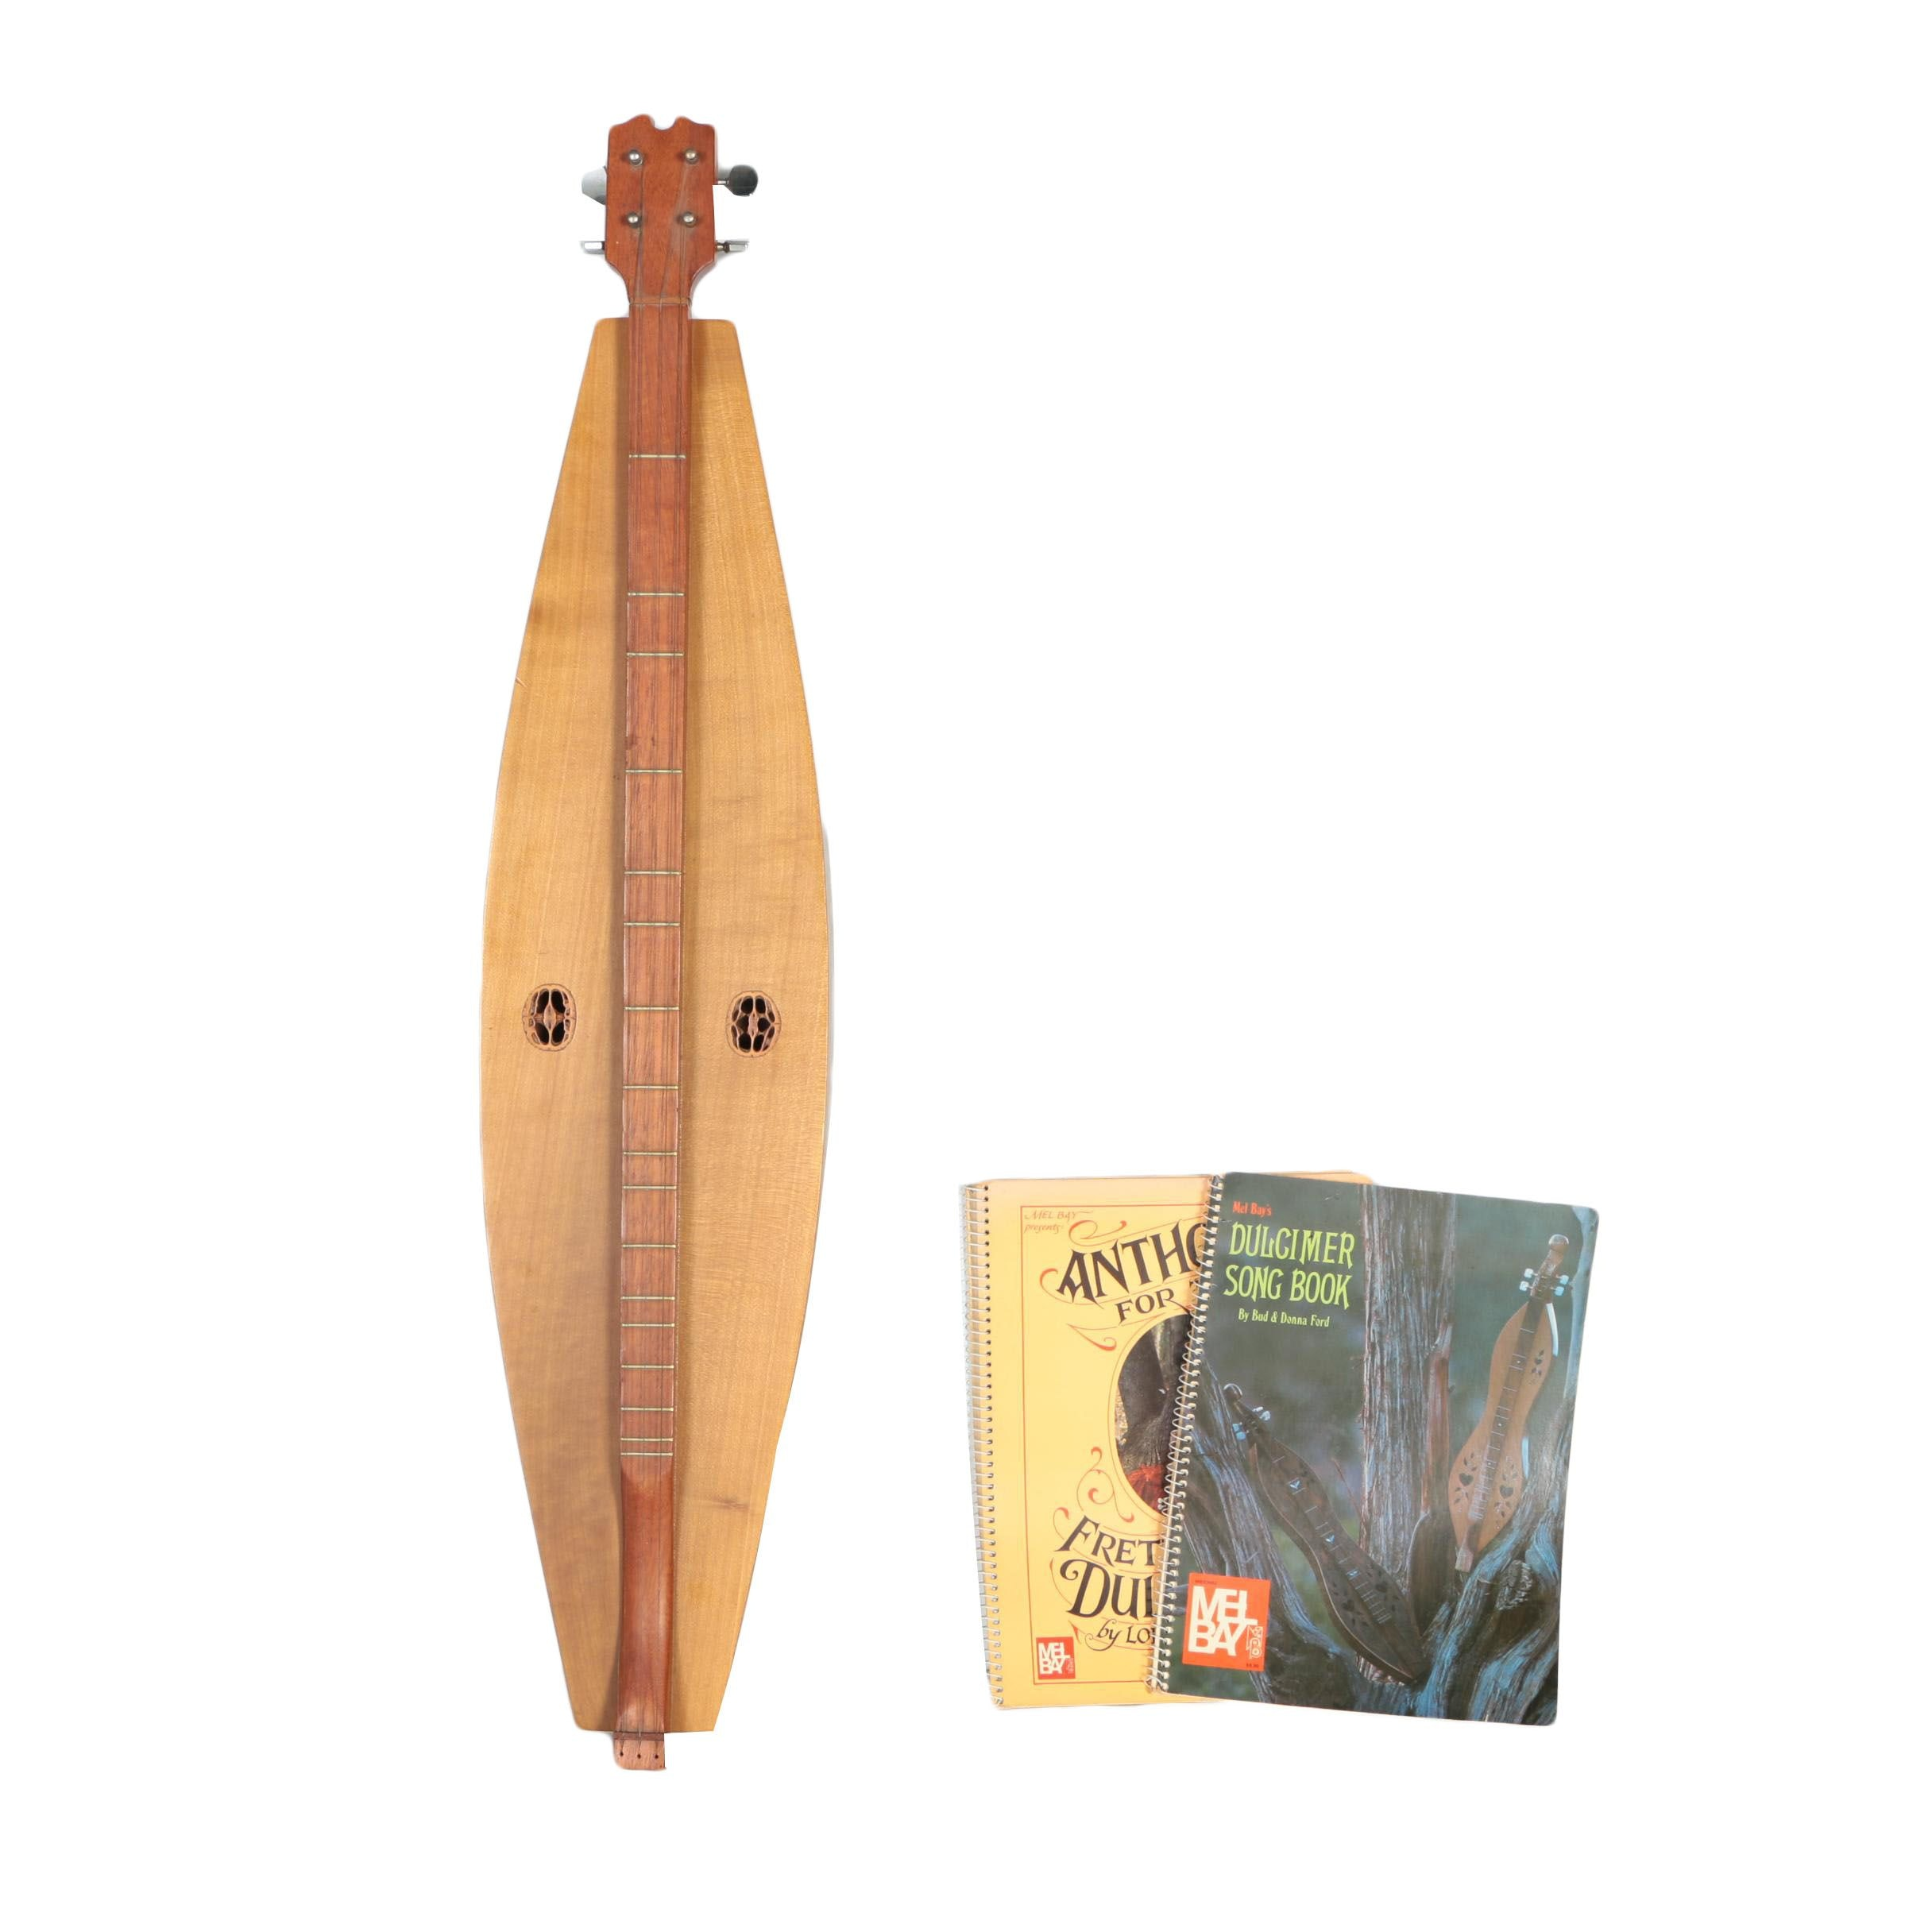 Handcrafted Appalachian Dulcimer and Songbooks